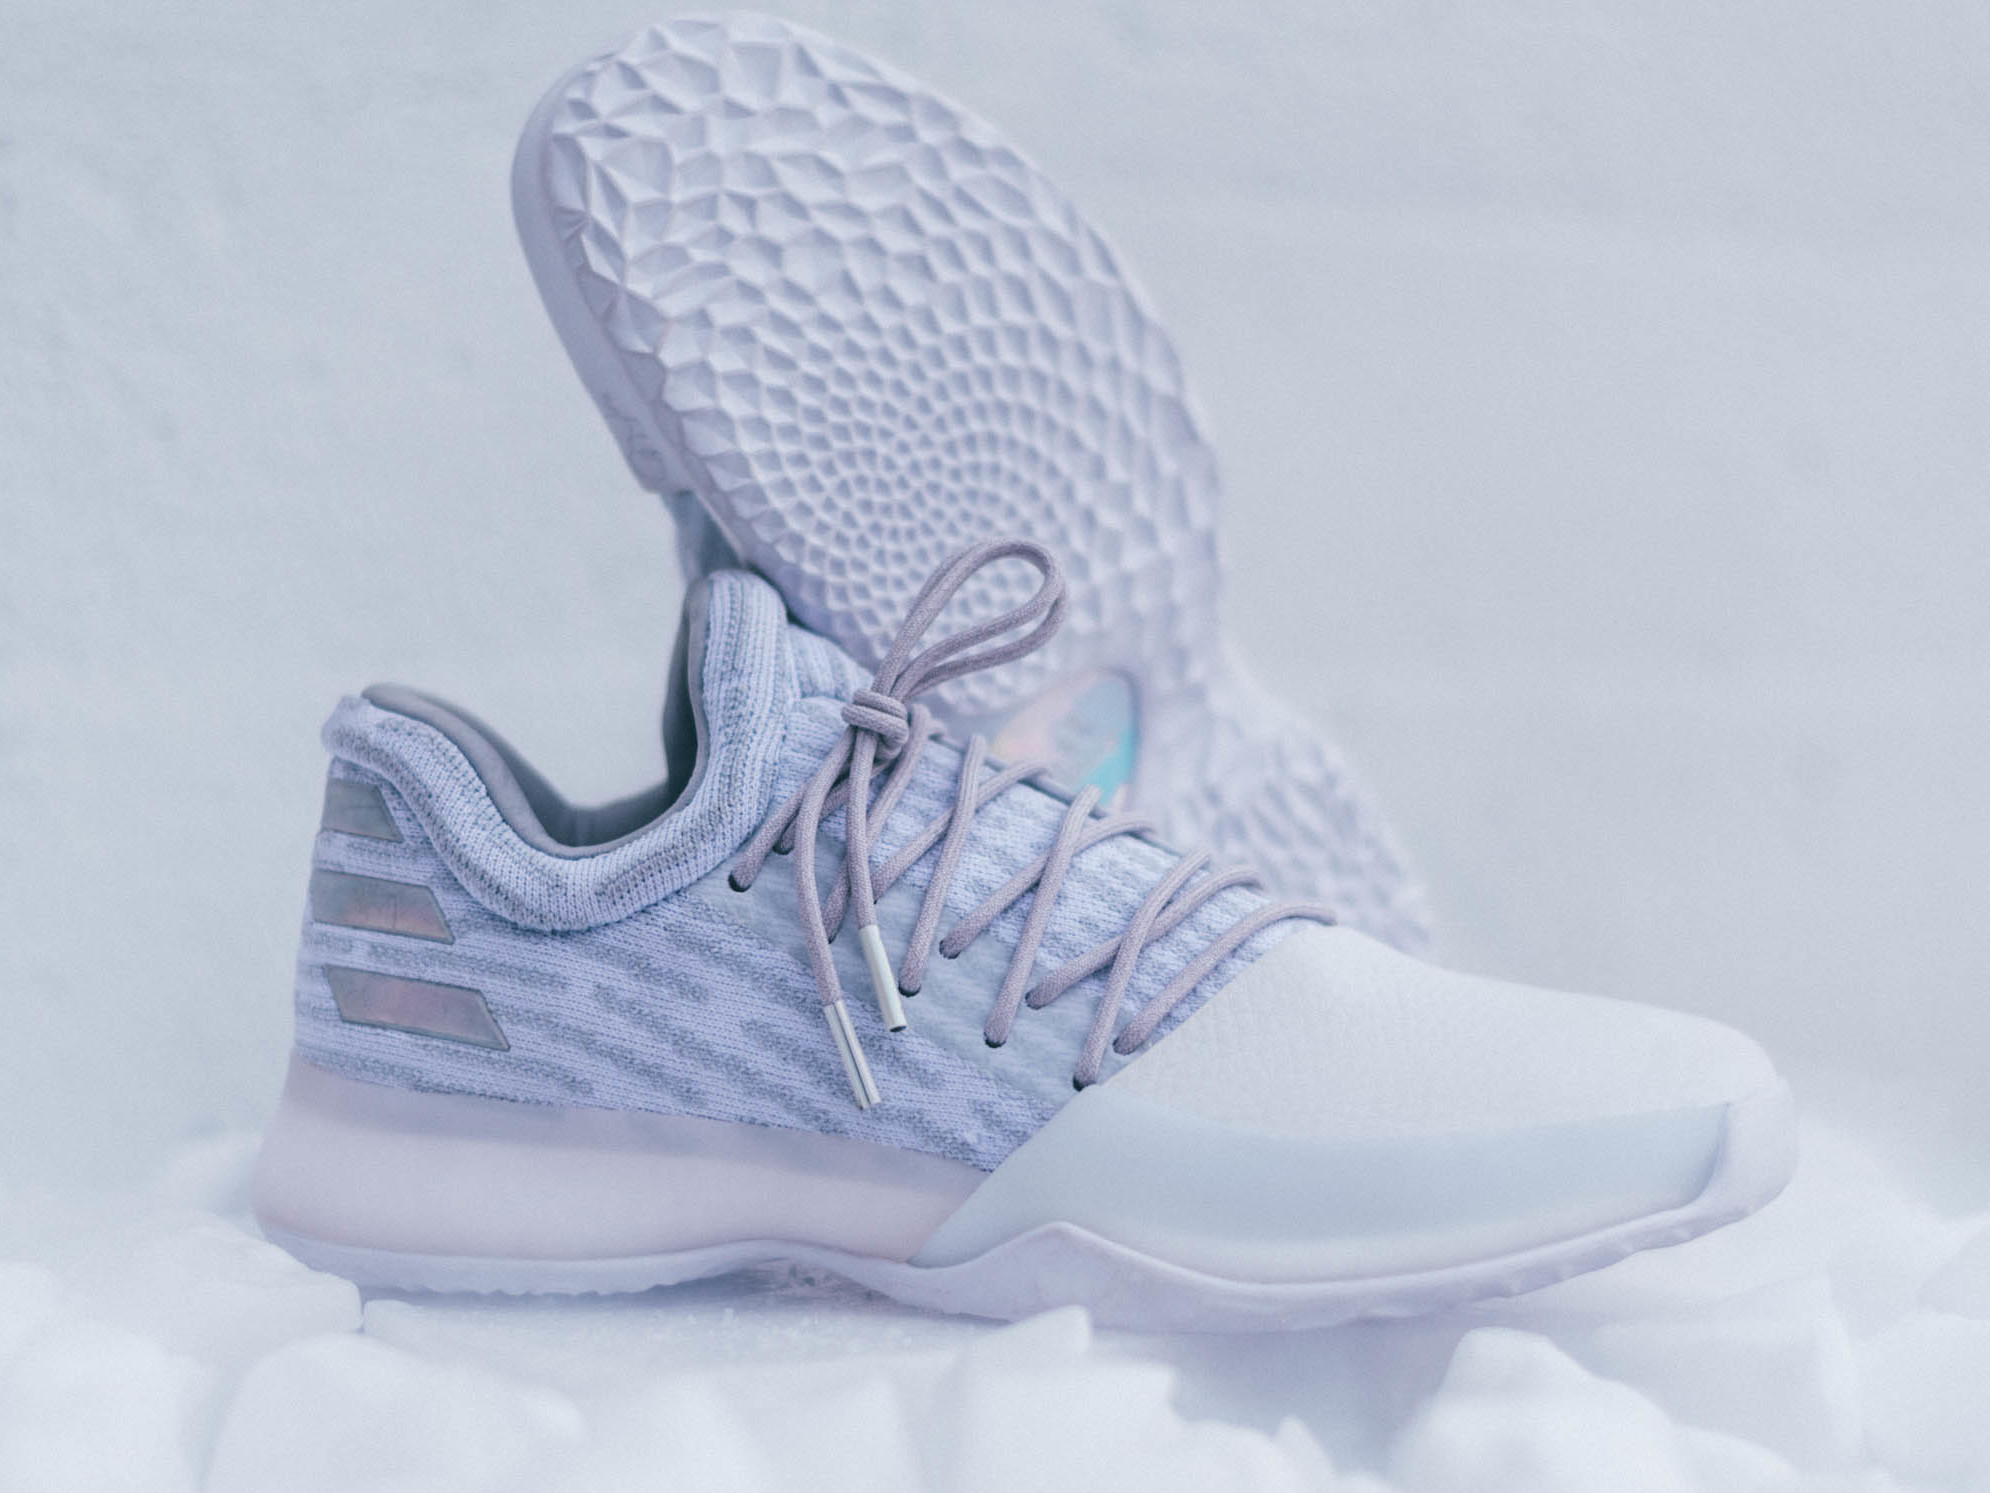 ccf13effd4 ... where can i buy netherlands adidas harden vol. 1 13 below zero sole  collector da6da